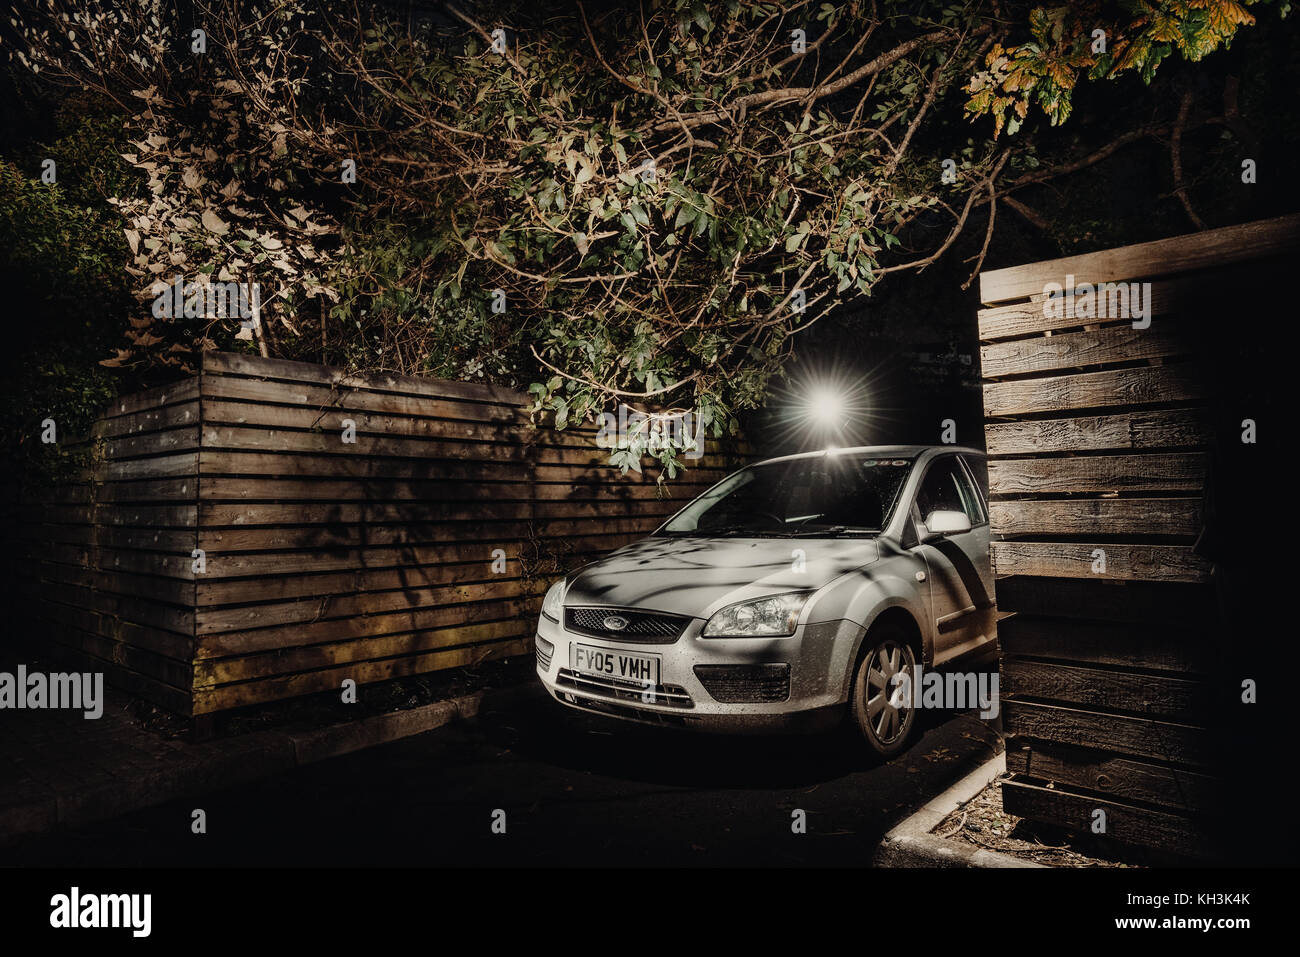 Silver Ford Focus parked outside at night, Cornwall - Stock Image